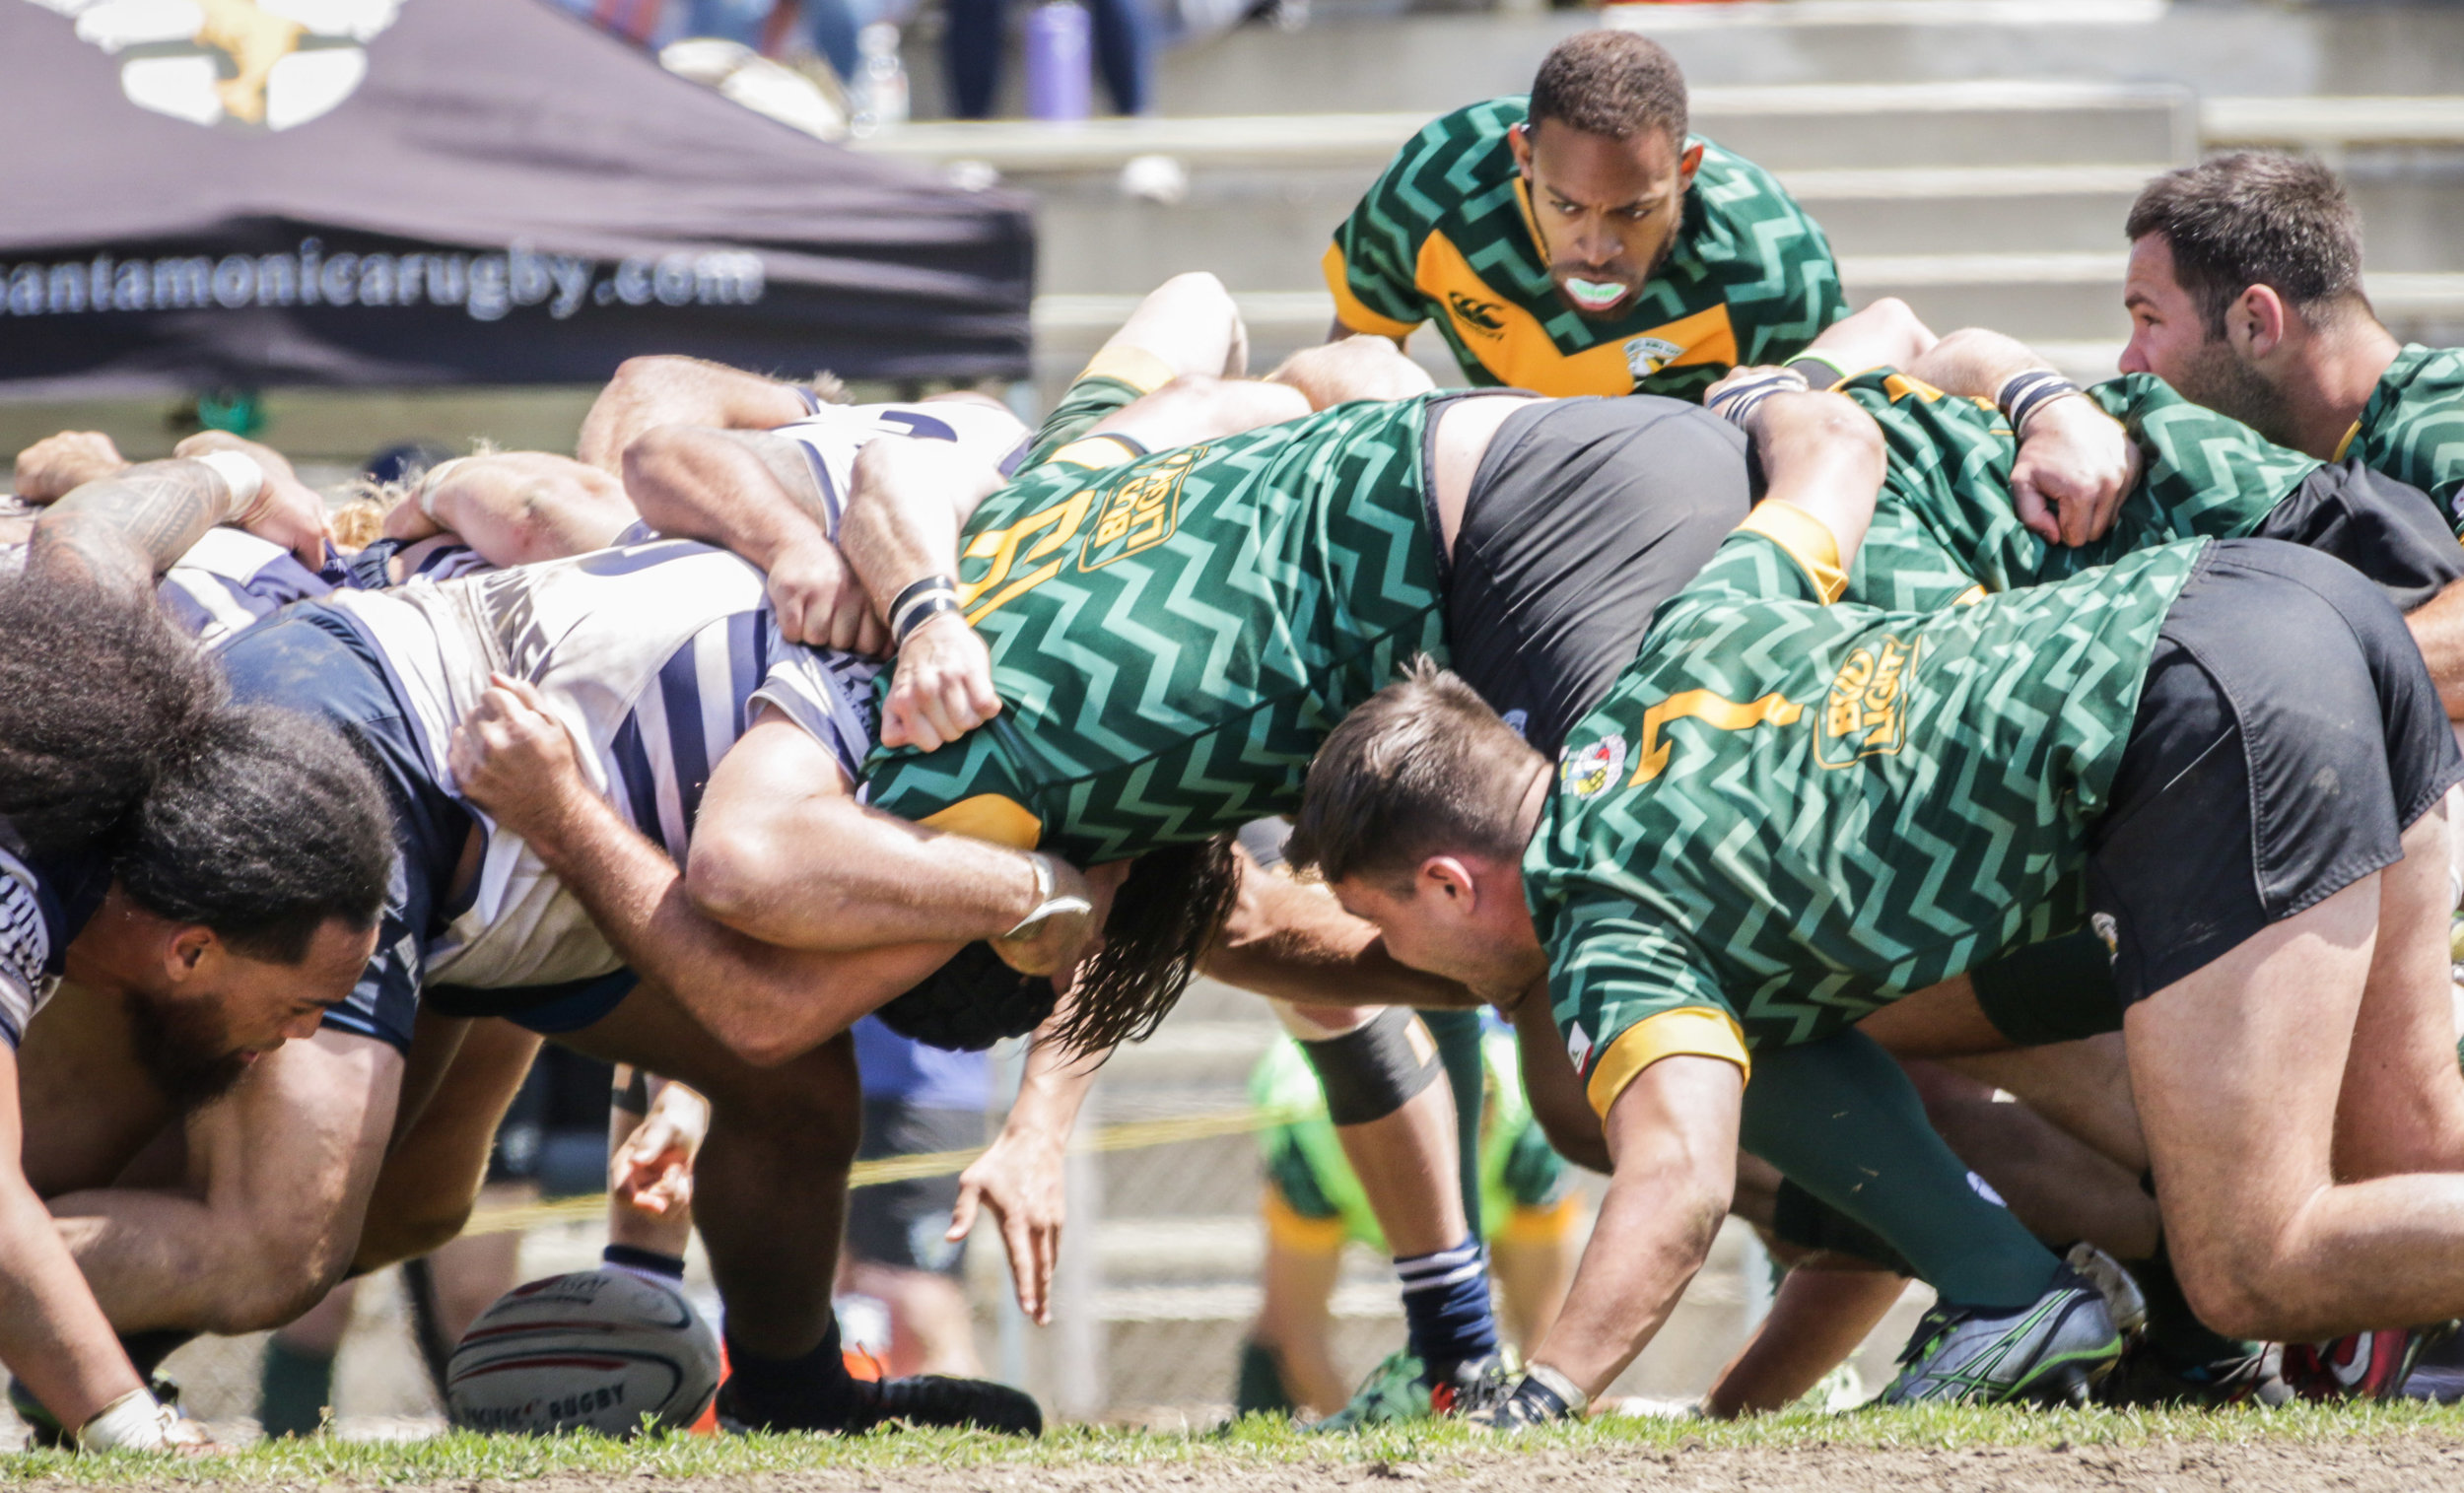 Santa Monica Rugby player closely follows the ball during a scrum with Old Mission Beach Athletic Club during their game held at Westchester High School on Saturday, April 28th, 2018. The game ended 26-7 in favor for OMBAC. (Westchester, California, Saturday, April 28, 2018.) (Ashutosh Bikram Singh/Corsair Photo)